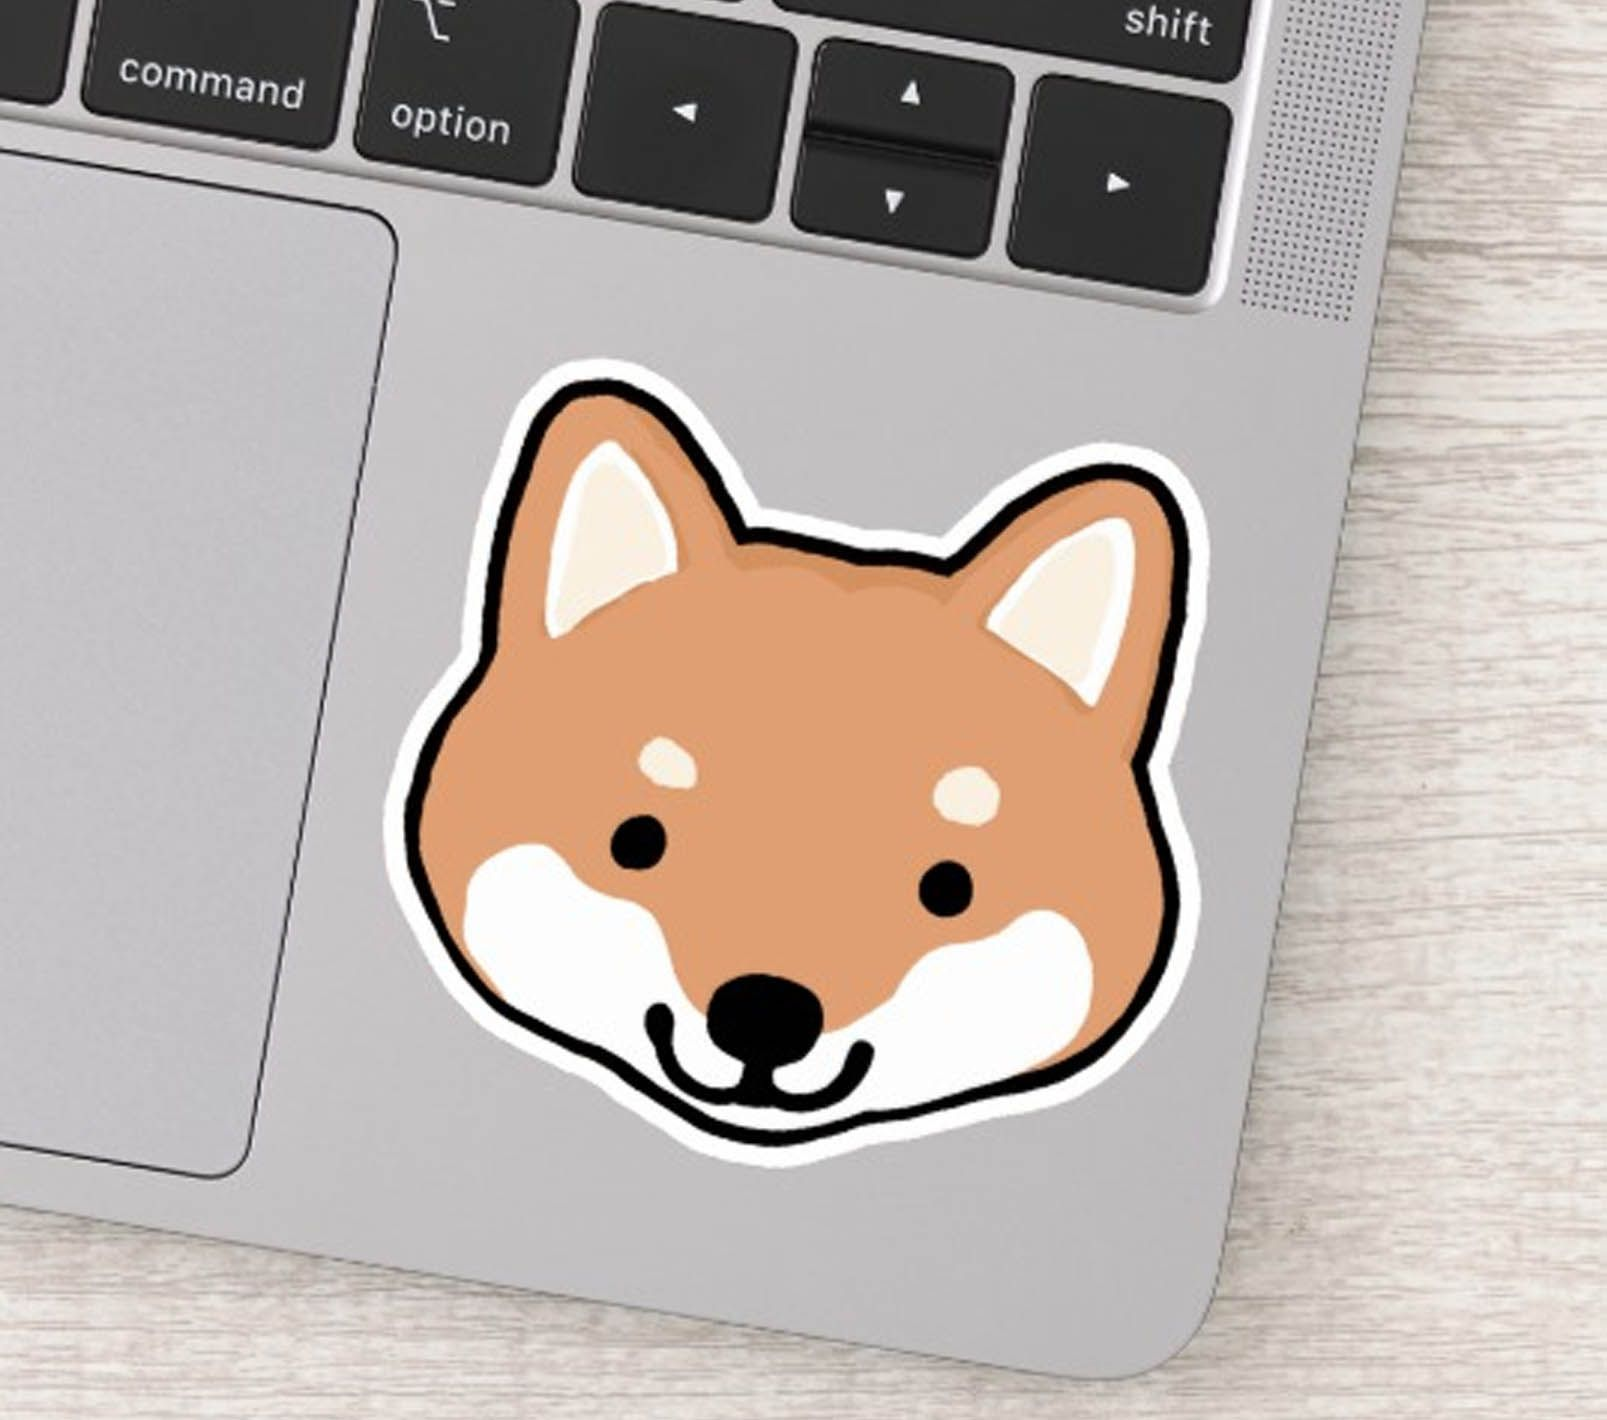 Cute Shiba Inu Dog Cartoon Happy Face Sticker Zazzle Com Cartoon Dog Shiba Inu Shiba Inu Dog